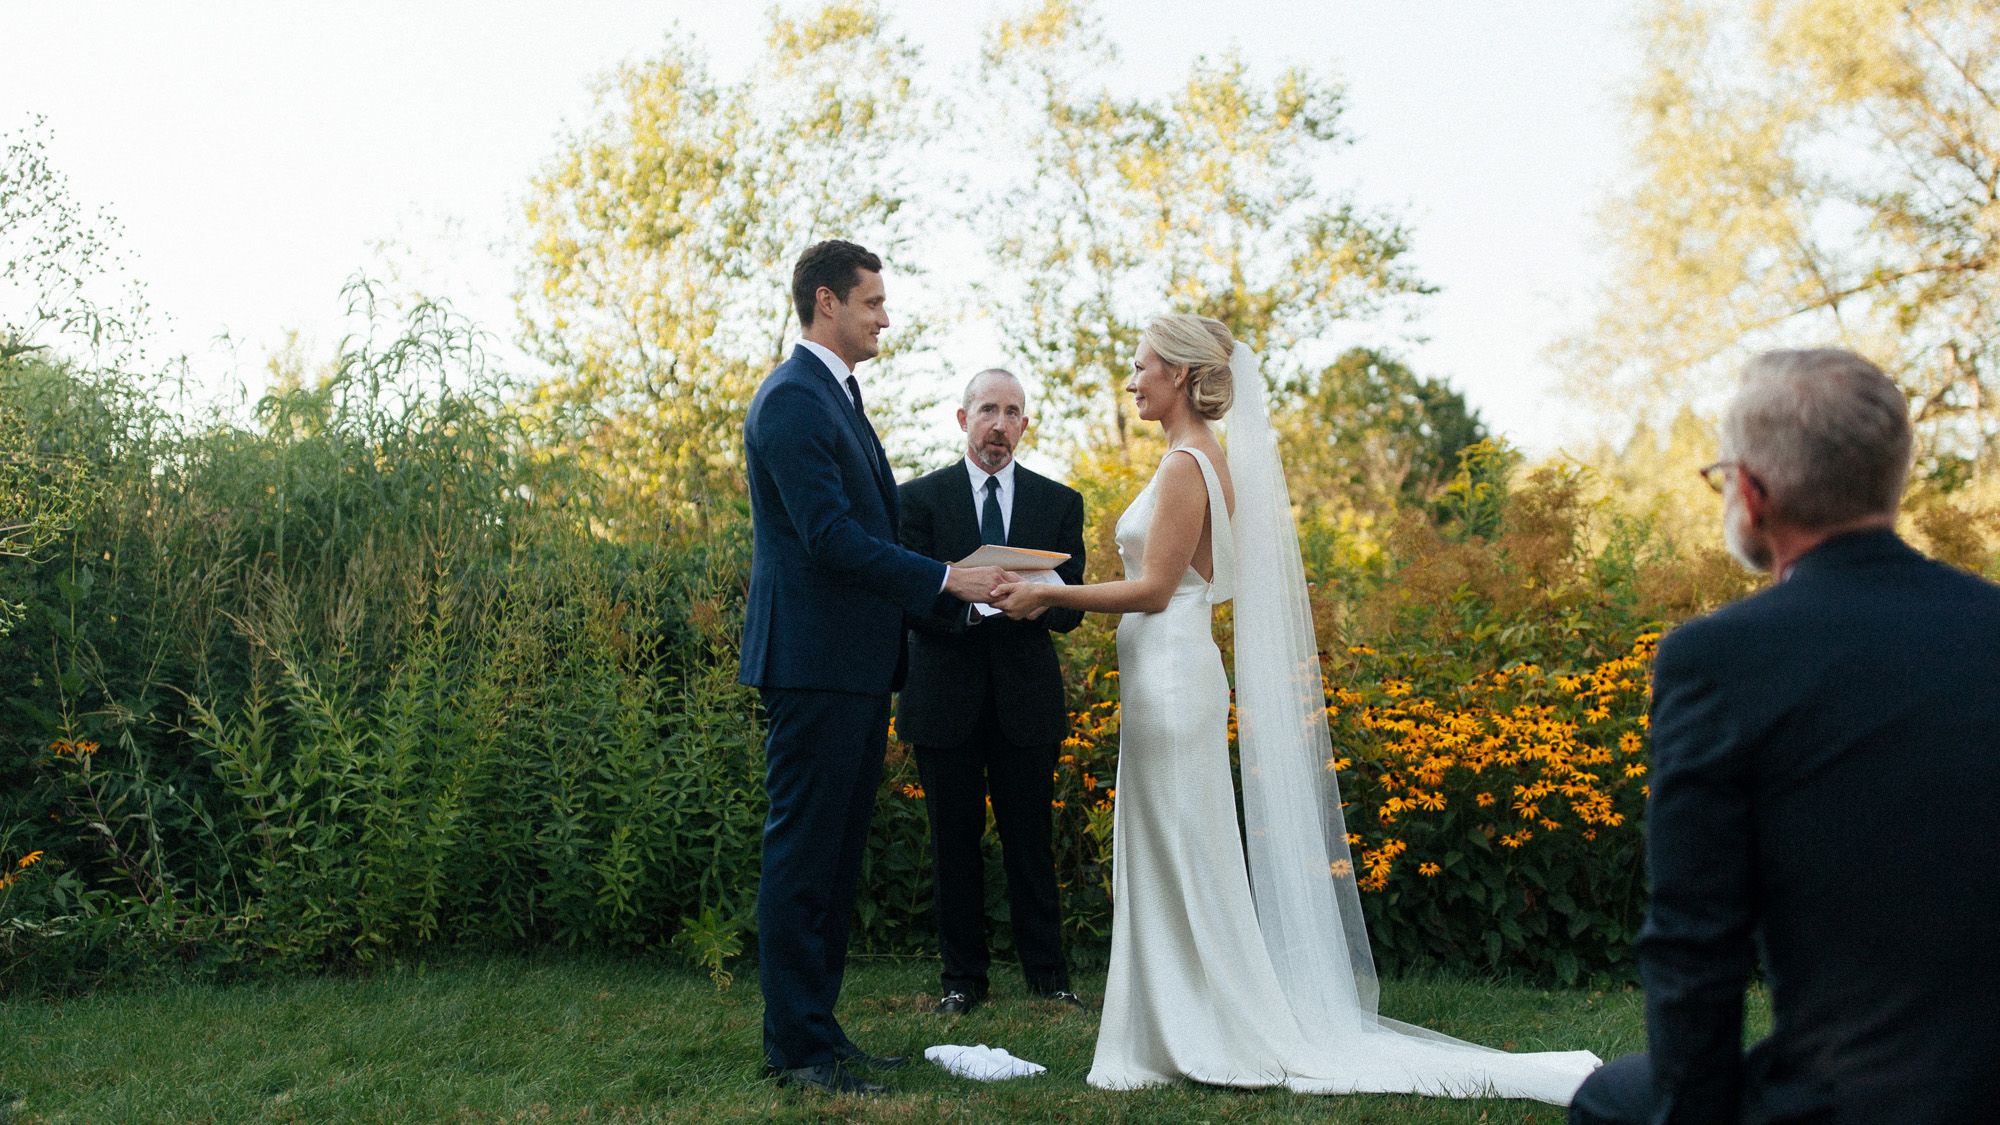 upstate_new_york_wedding_alec_vanderboom-0074.jpg